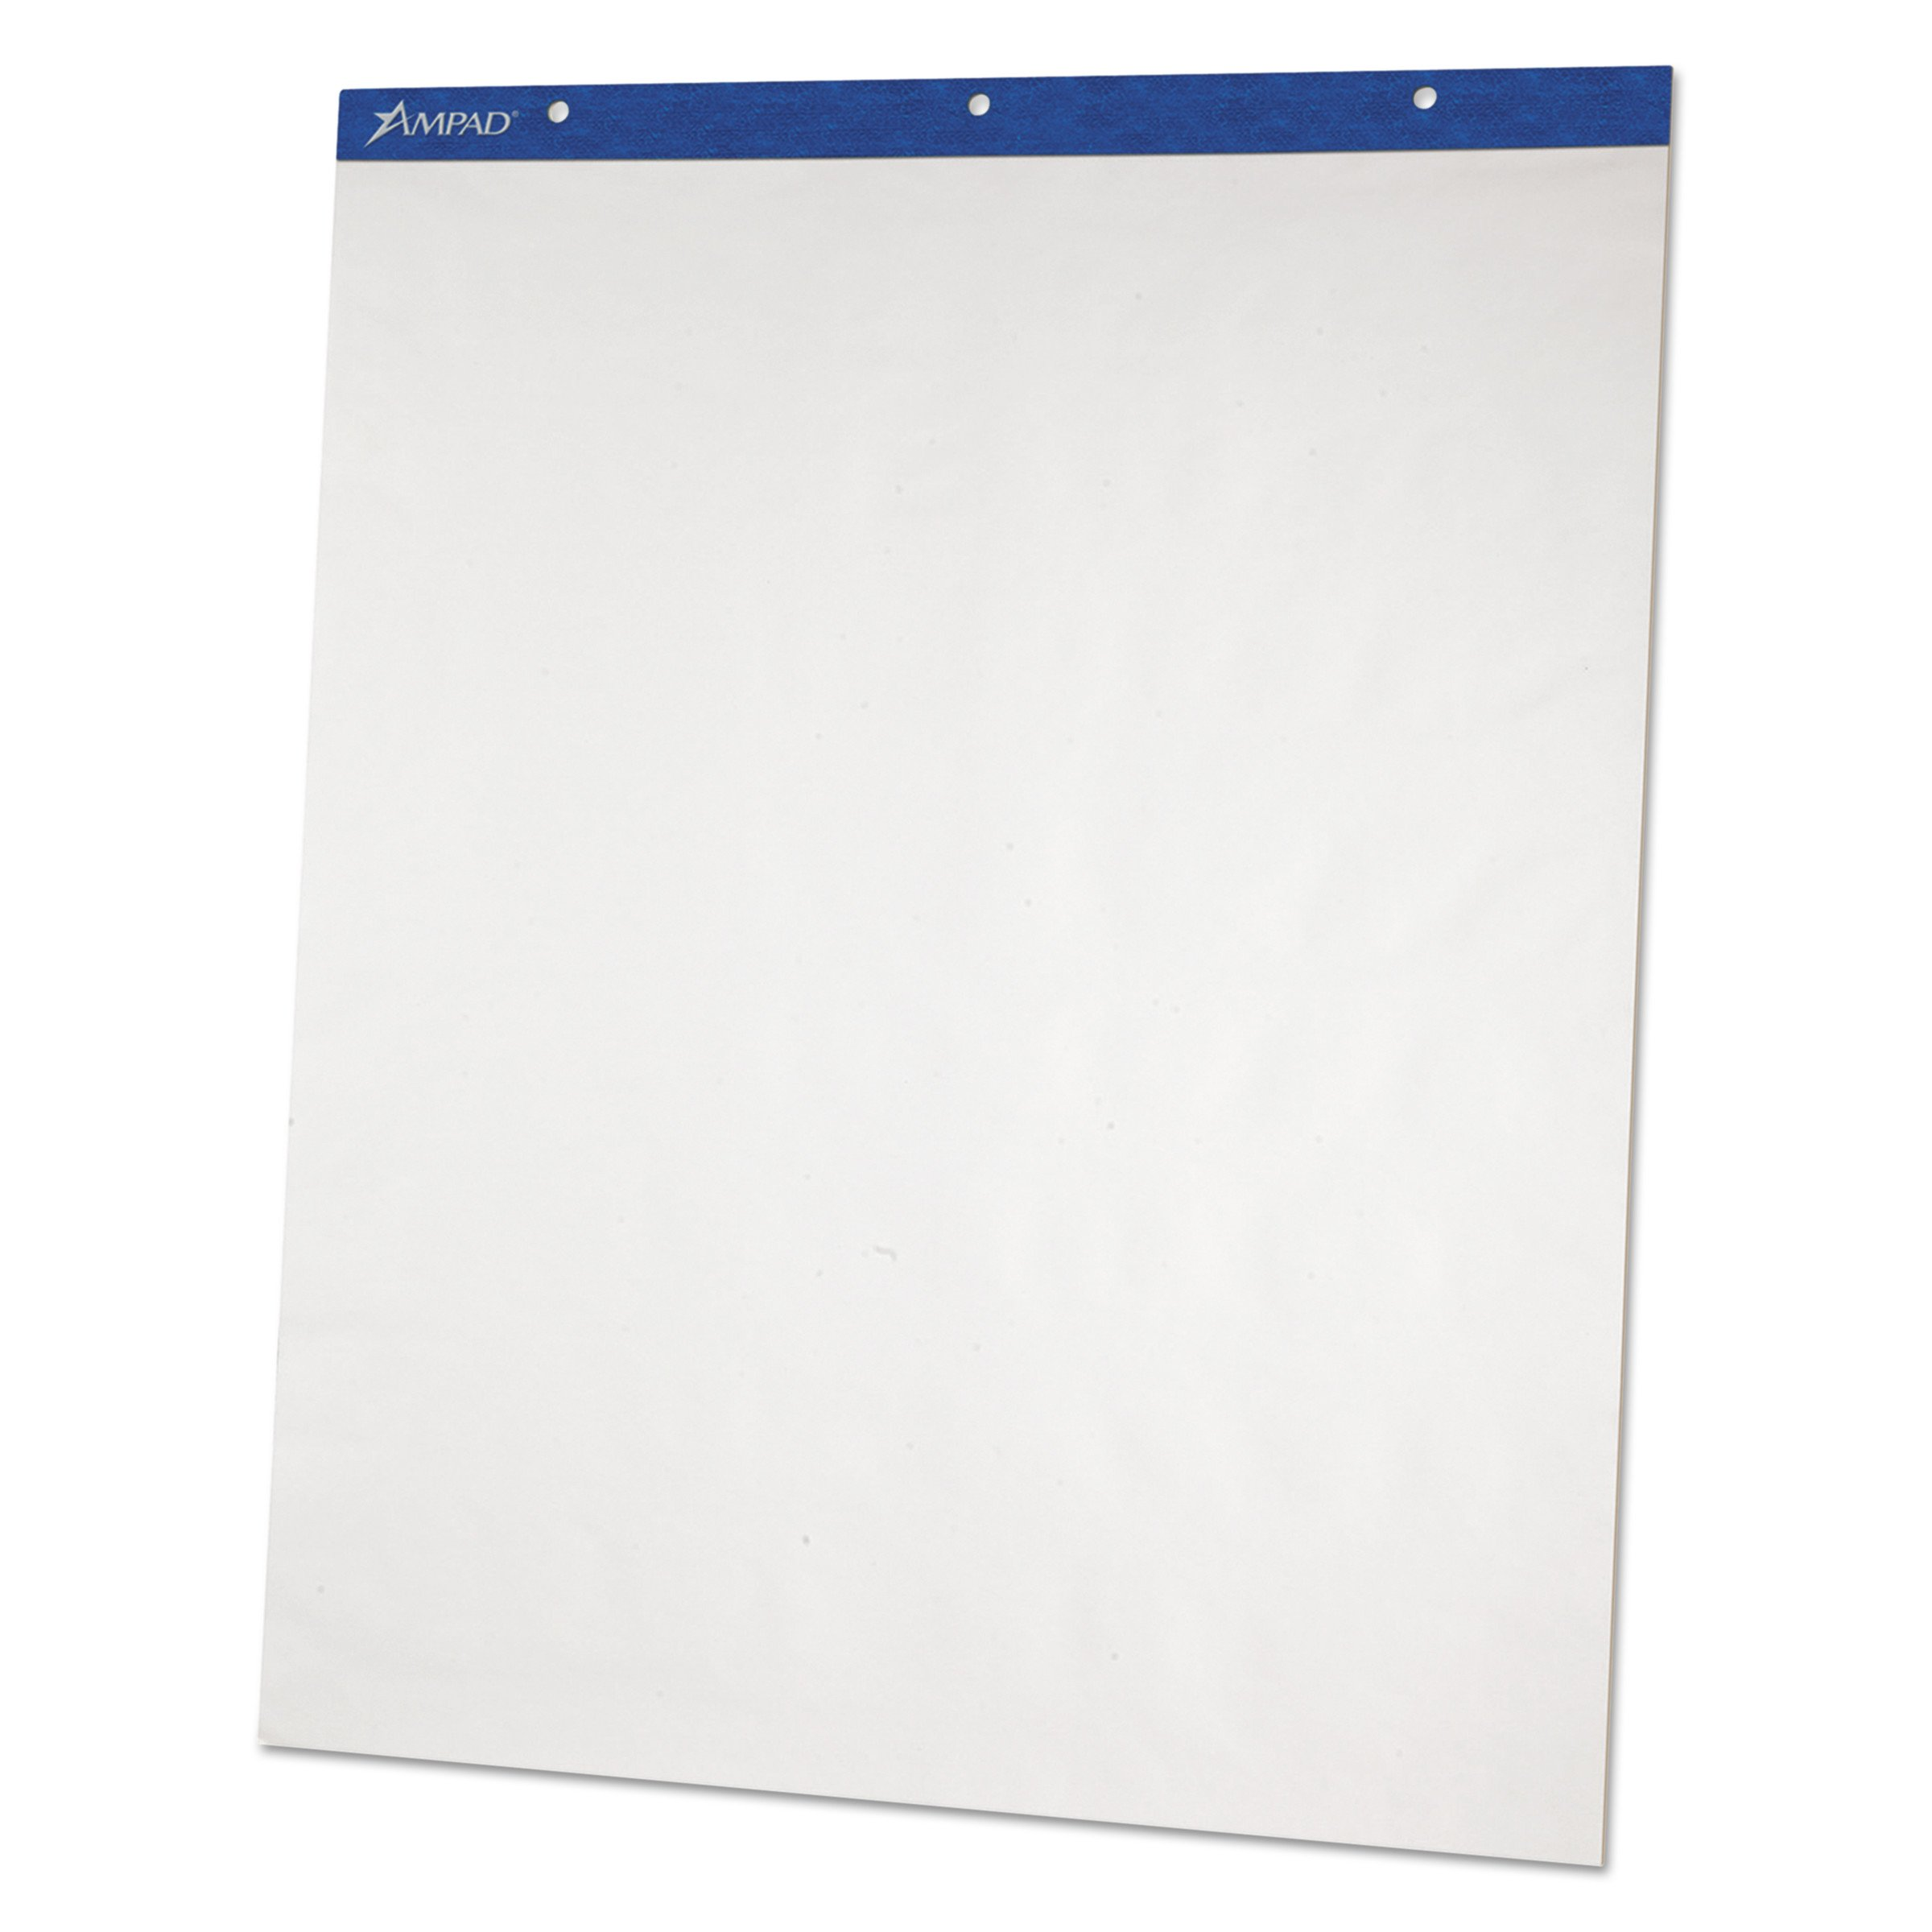 Ampad 24028 Flip Charts, Unruled, 27 x 34, White, 50 Sheets (Pack of 2) by Ampad